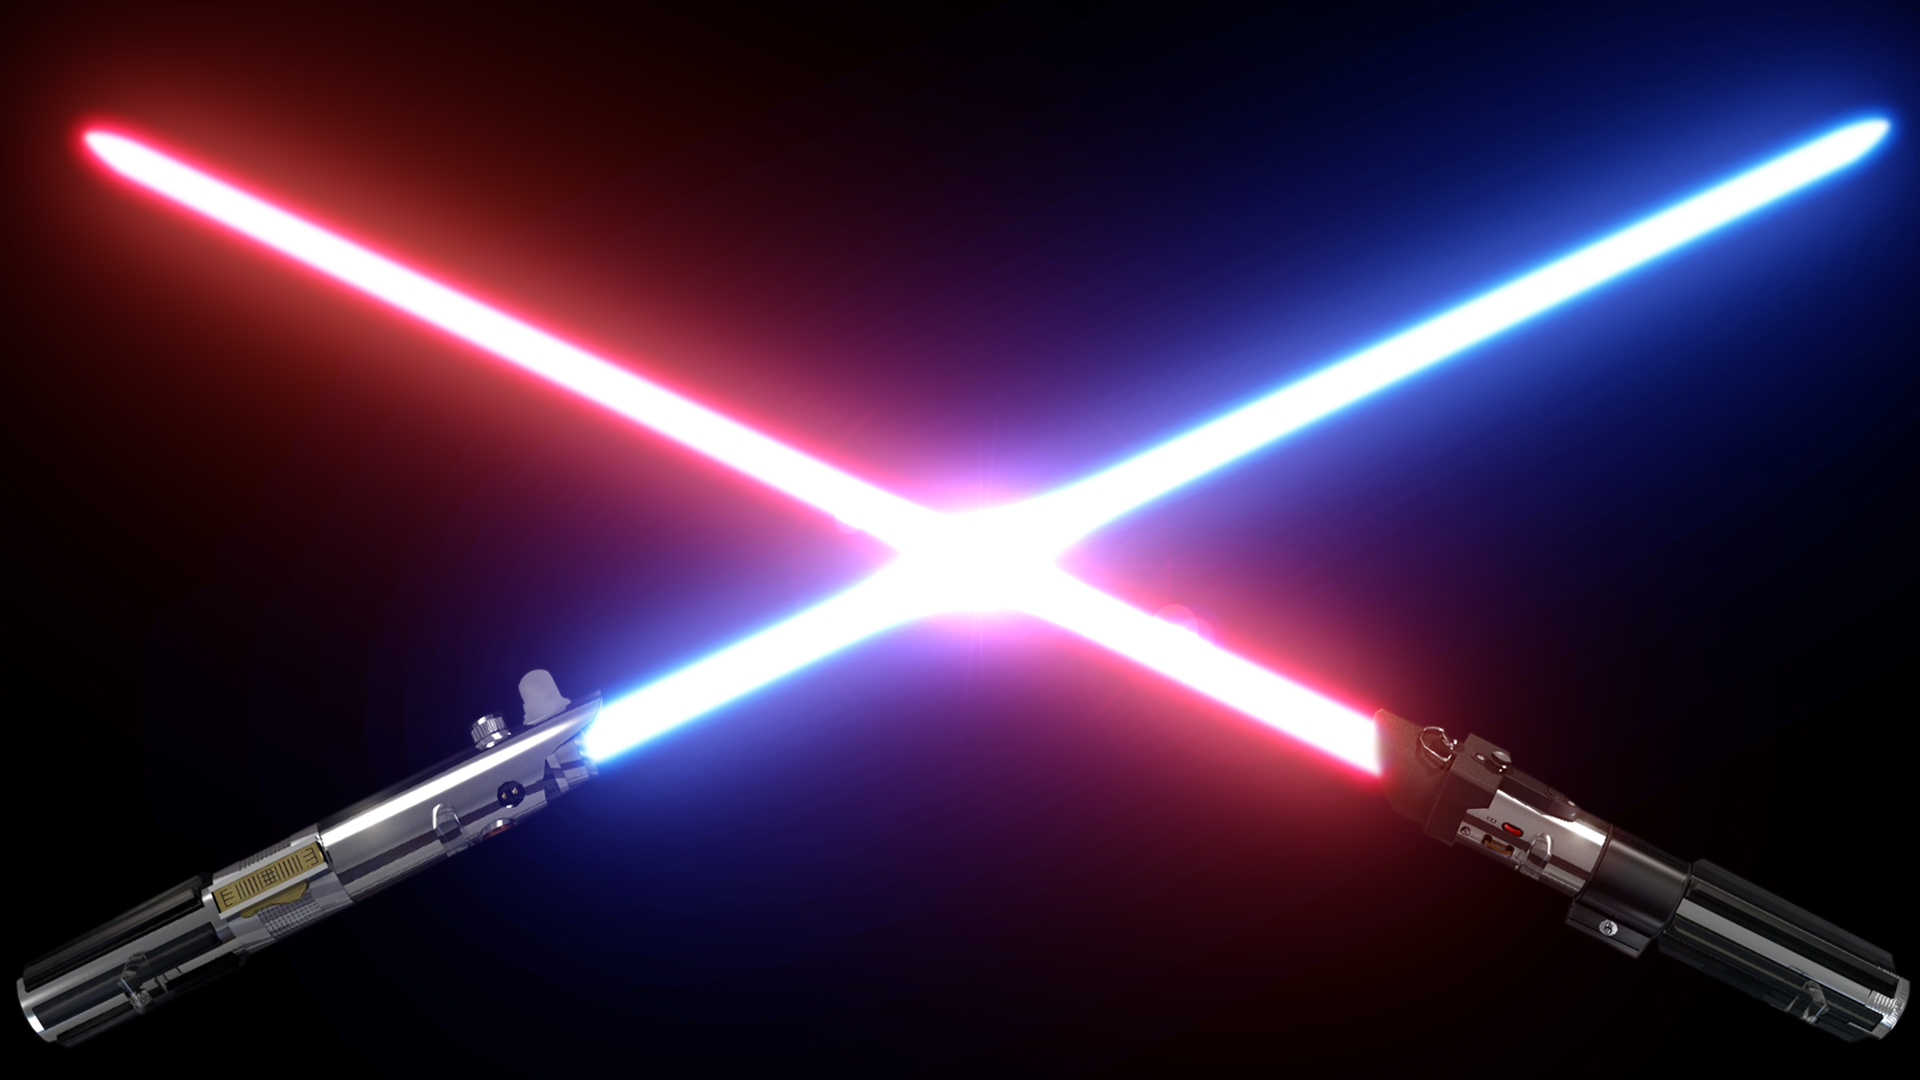 Free Download Many Times Is Lightsaber Said In Star Wars Video Churchmag 1920x1080 For Your Desktop Mobile Tablet Explore 75 Star Wars Green Screen Backgrounds Star Wars Green Screen